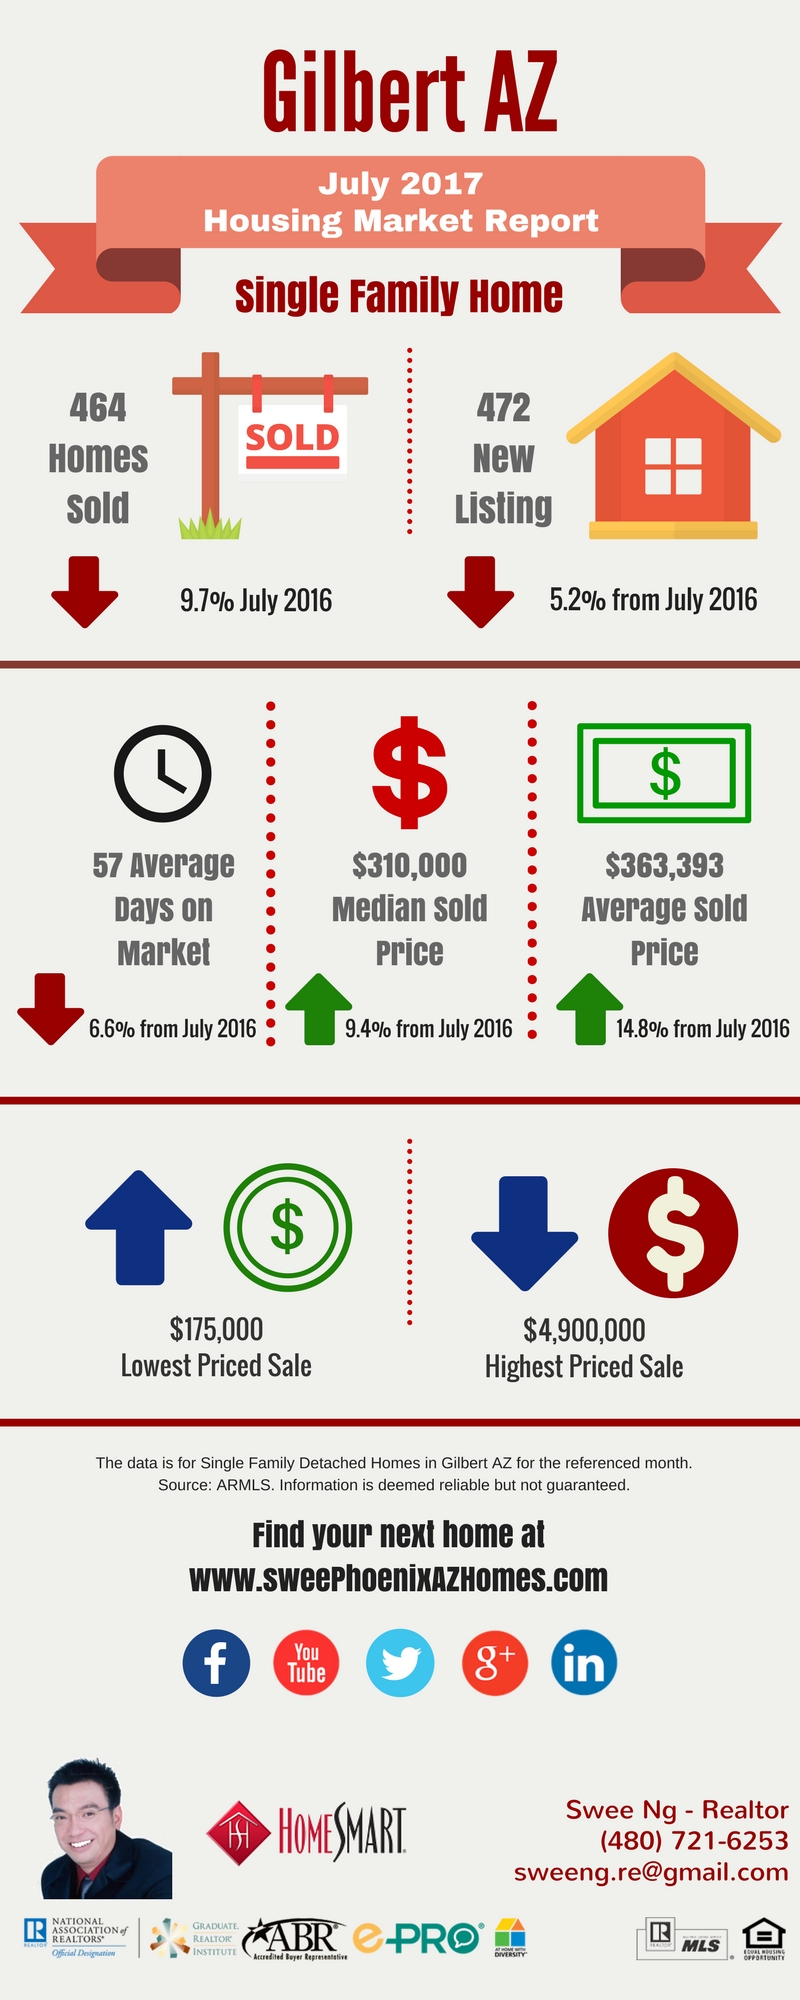 Gilbert AZ July 2017 Housing Market Trends Report by Swee Ng, Real Estate and House Value